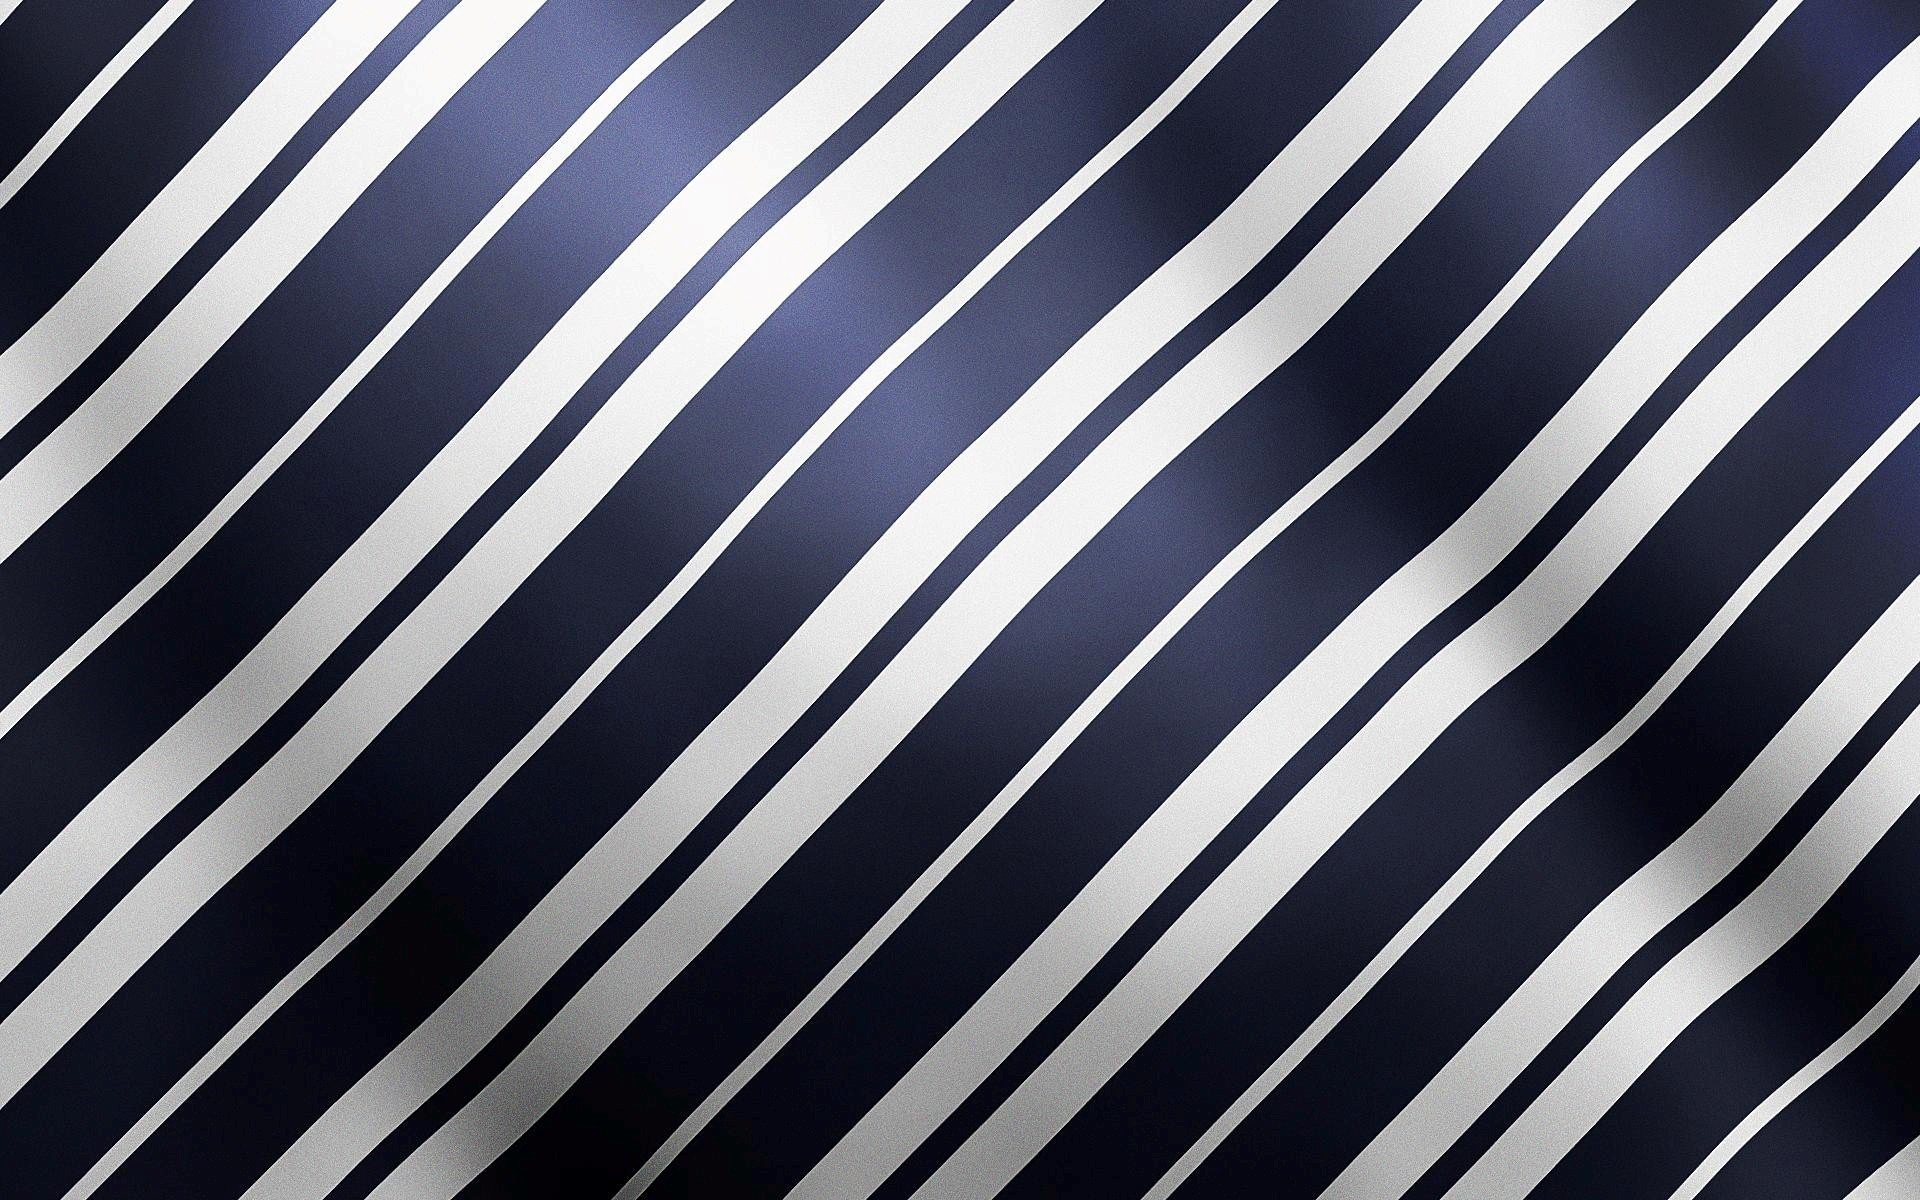 Black and White Line Abstract Background | HD Wallpapers